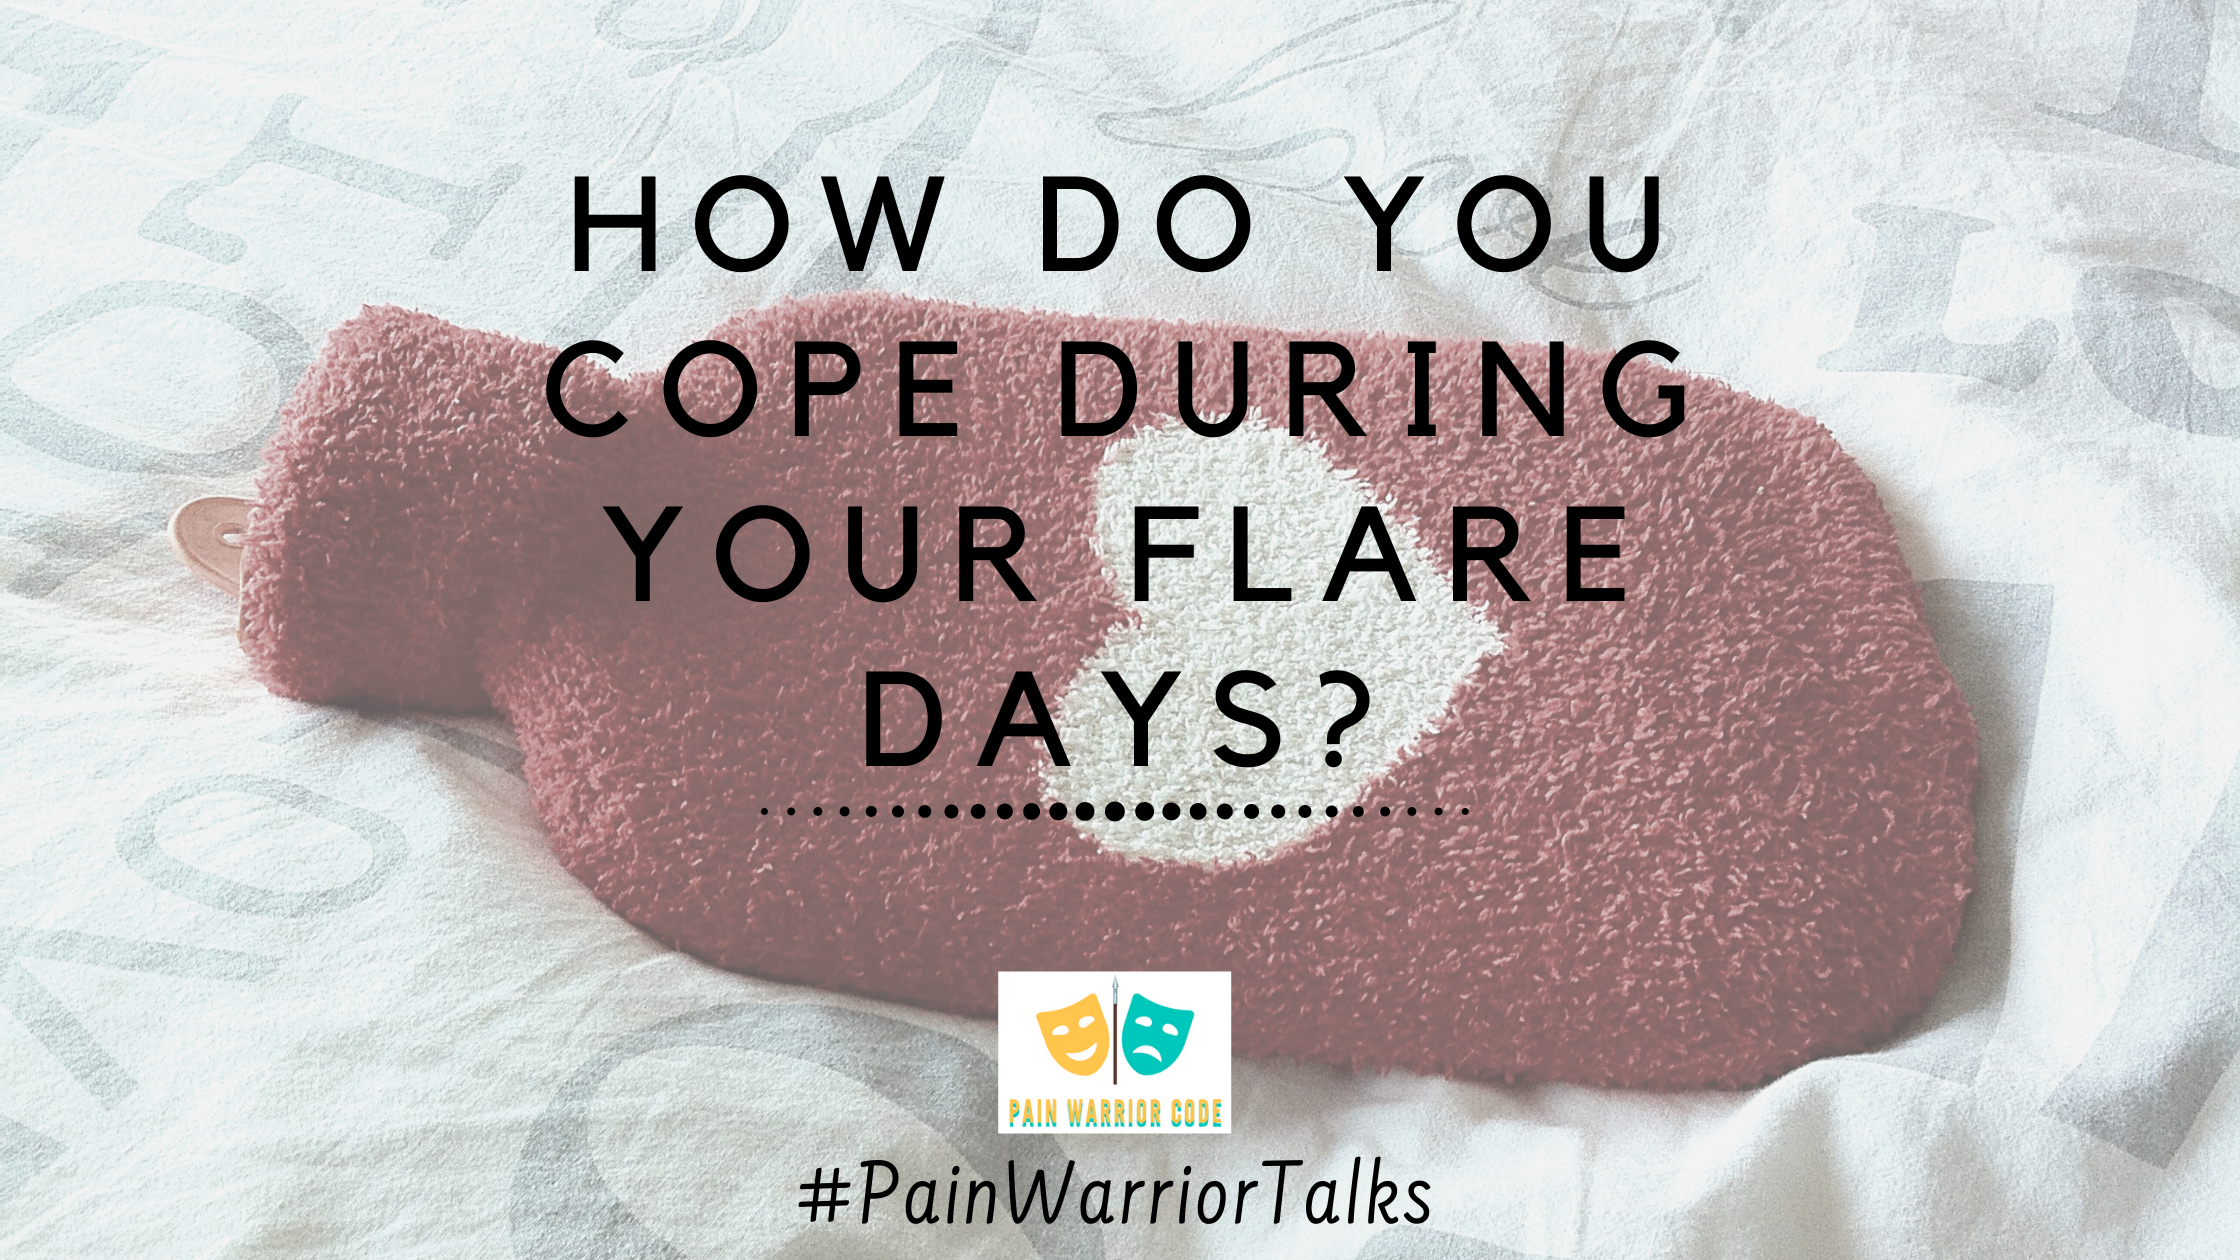 how do you cope during flare days?